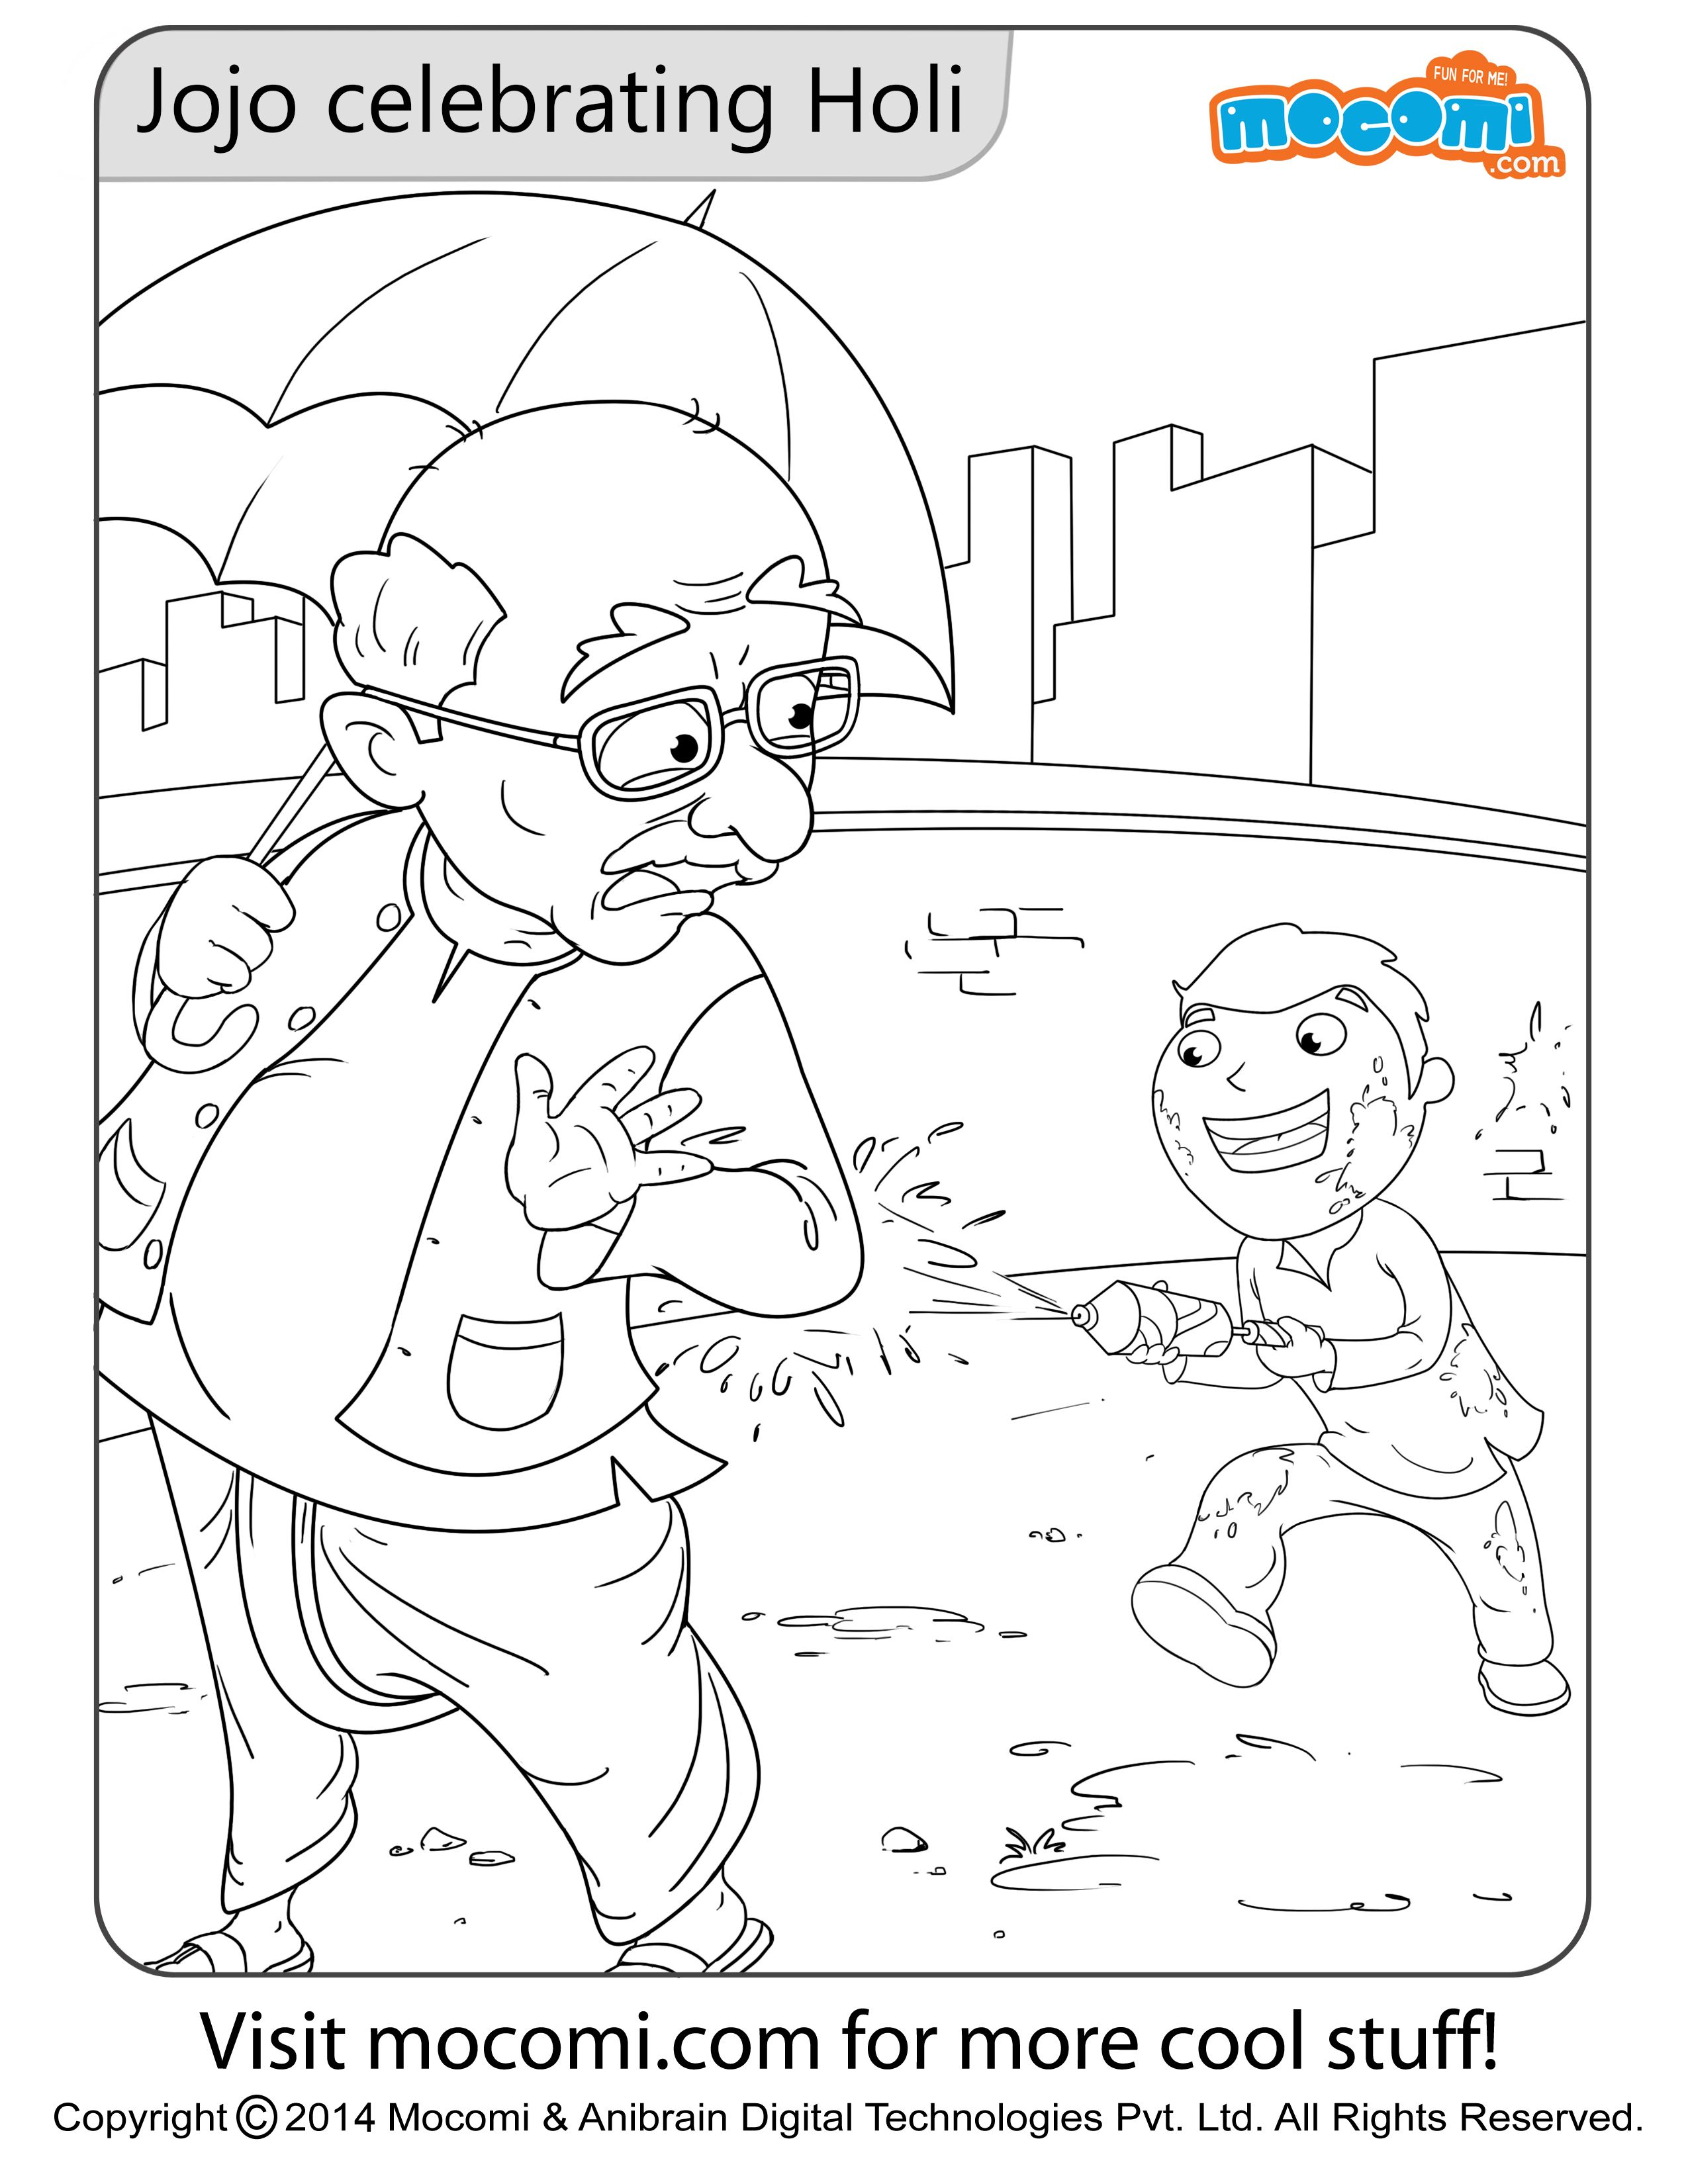 Jojo Holi Colouring Page Colouring Pages for Kids Holi